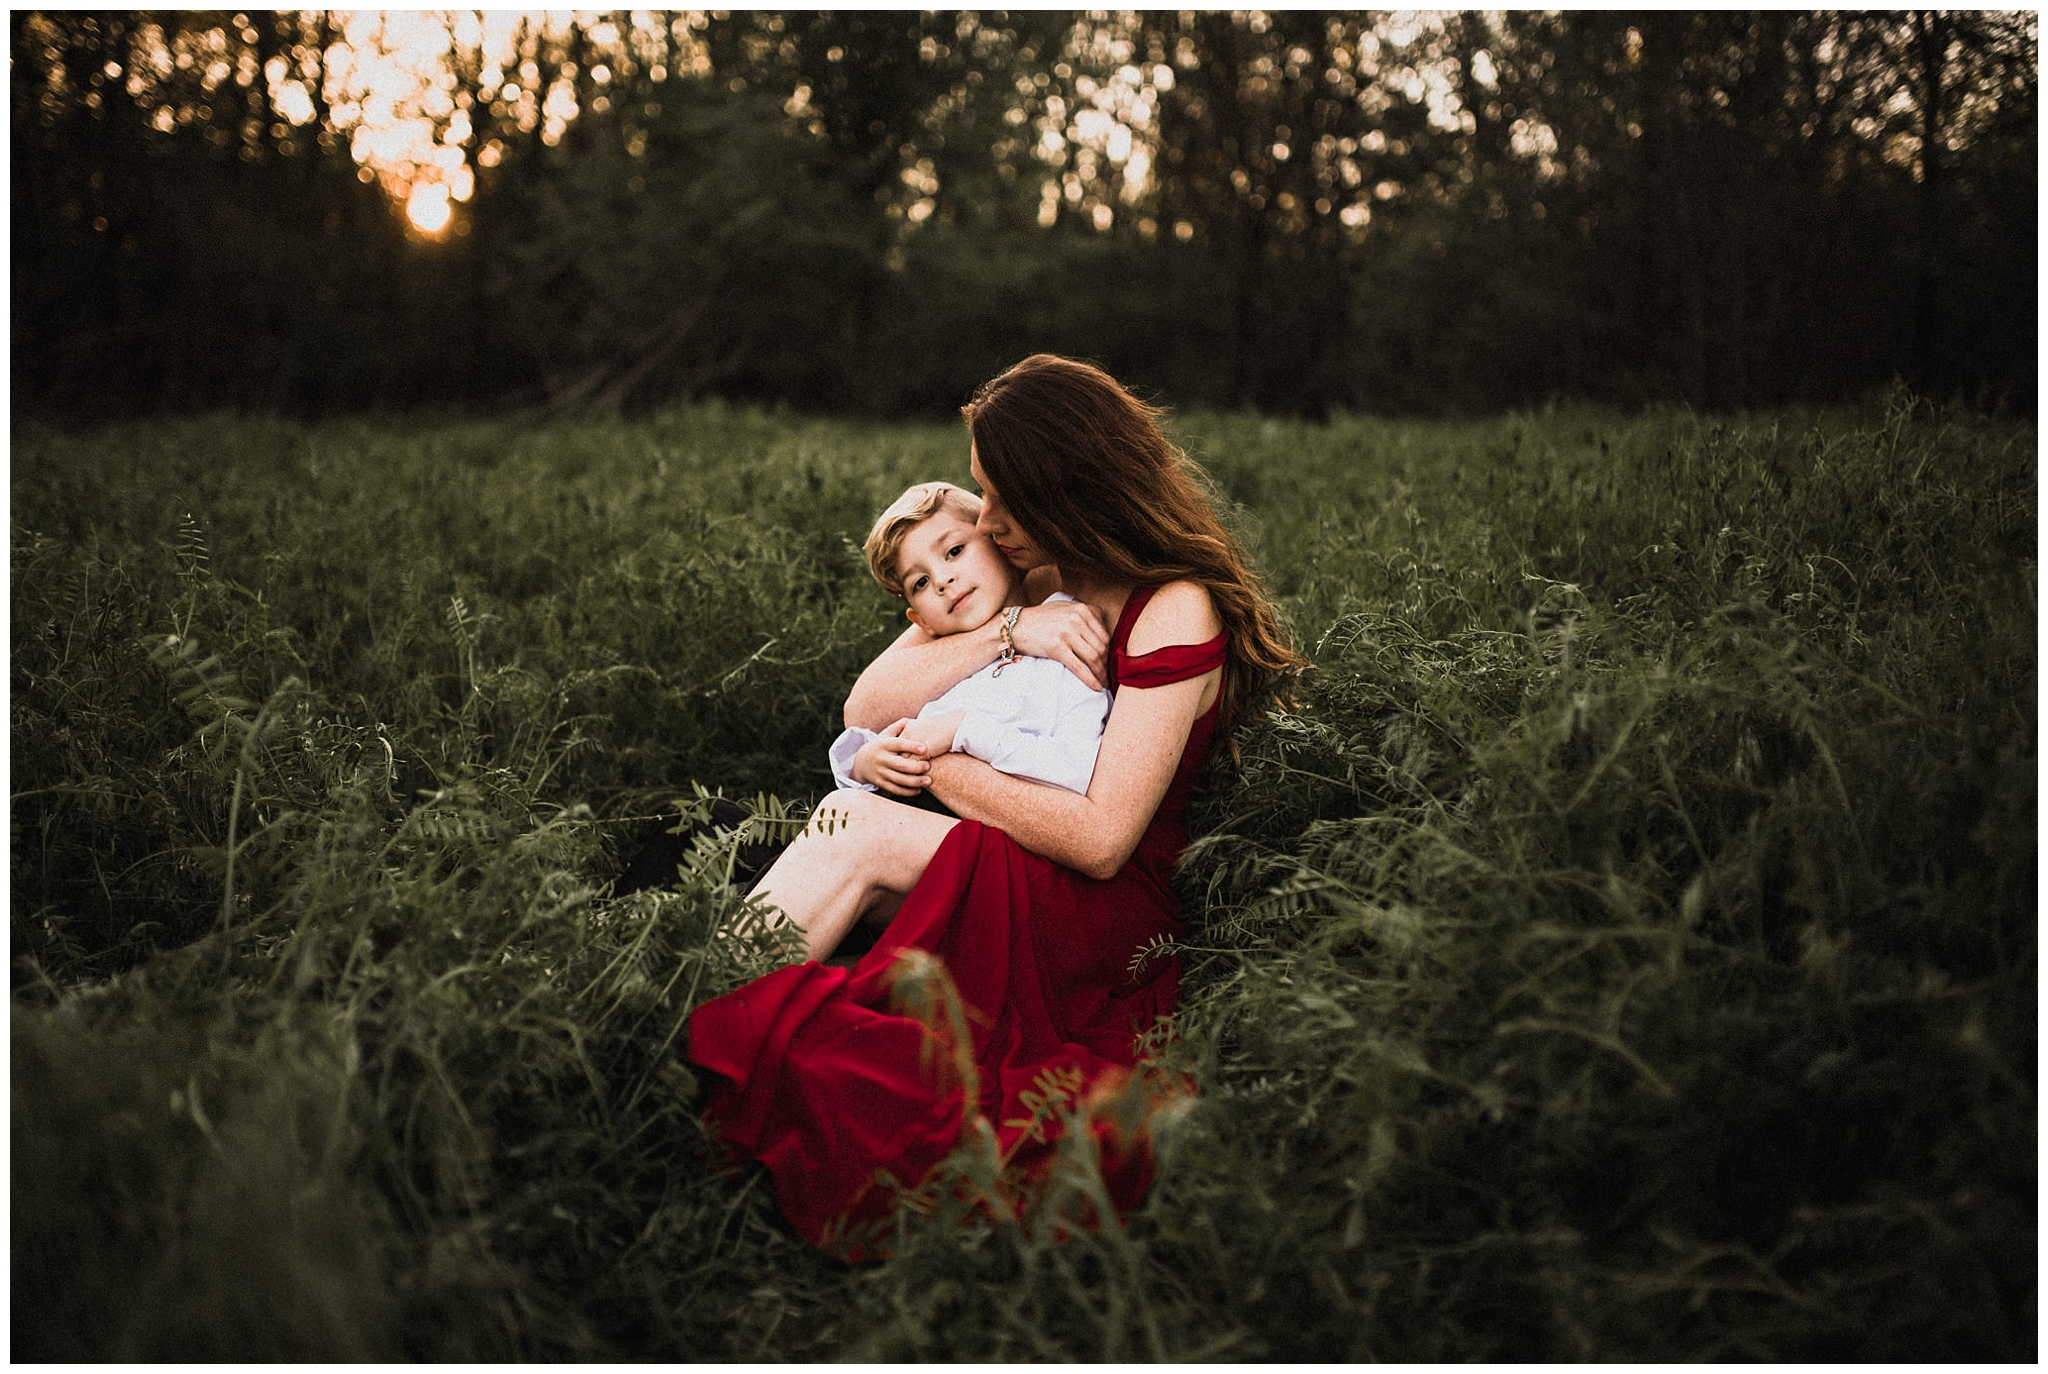 twyla jones photography | south florida family photographer | mother son session in a meadow-20160420-_TDJ4029.jpg